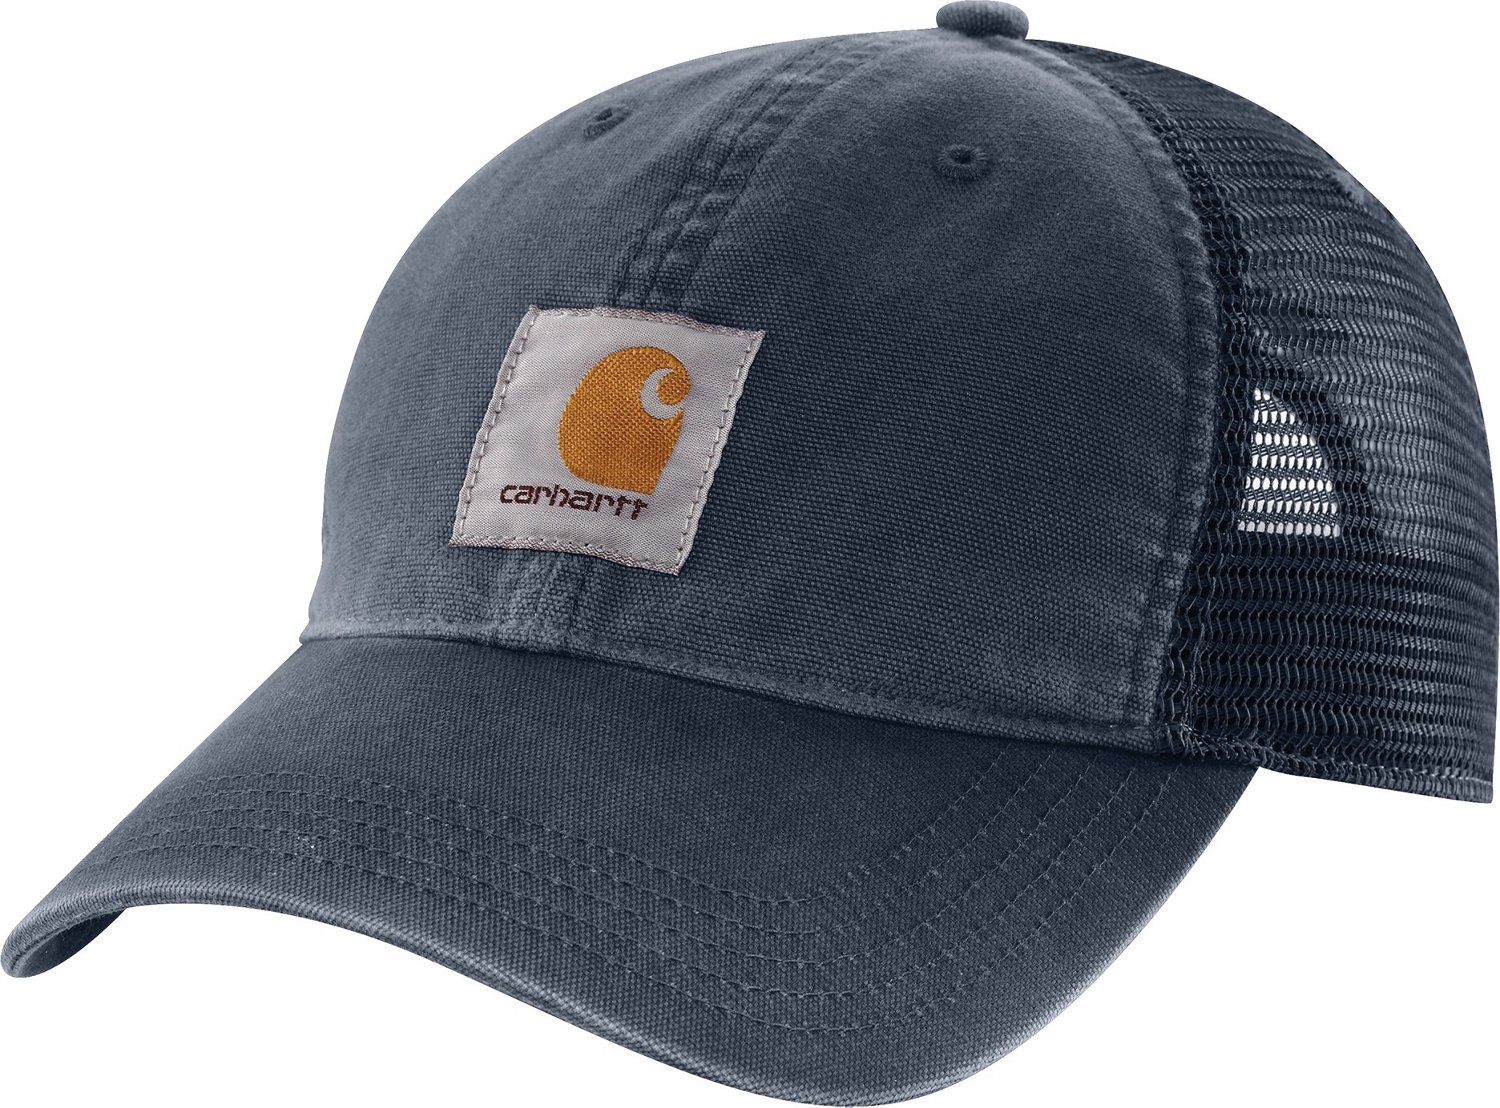 30e485f25d162 Display product reviews for Carhartt Men s Buffalo Cap